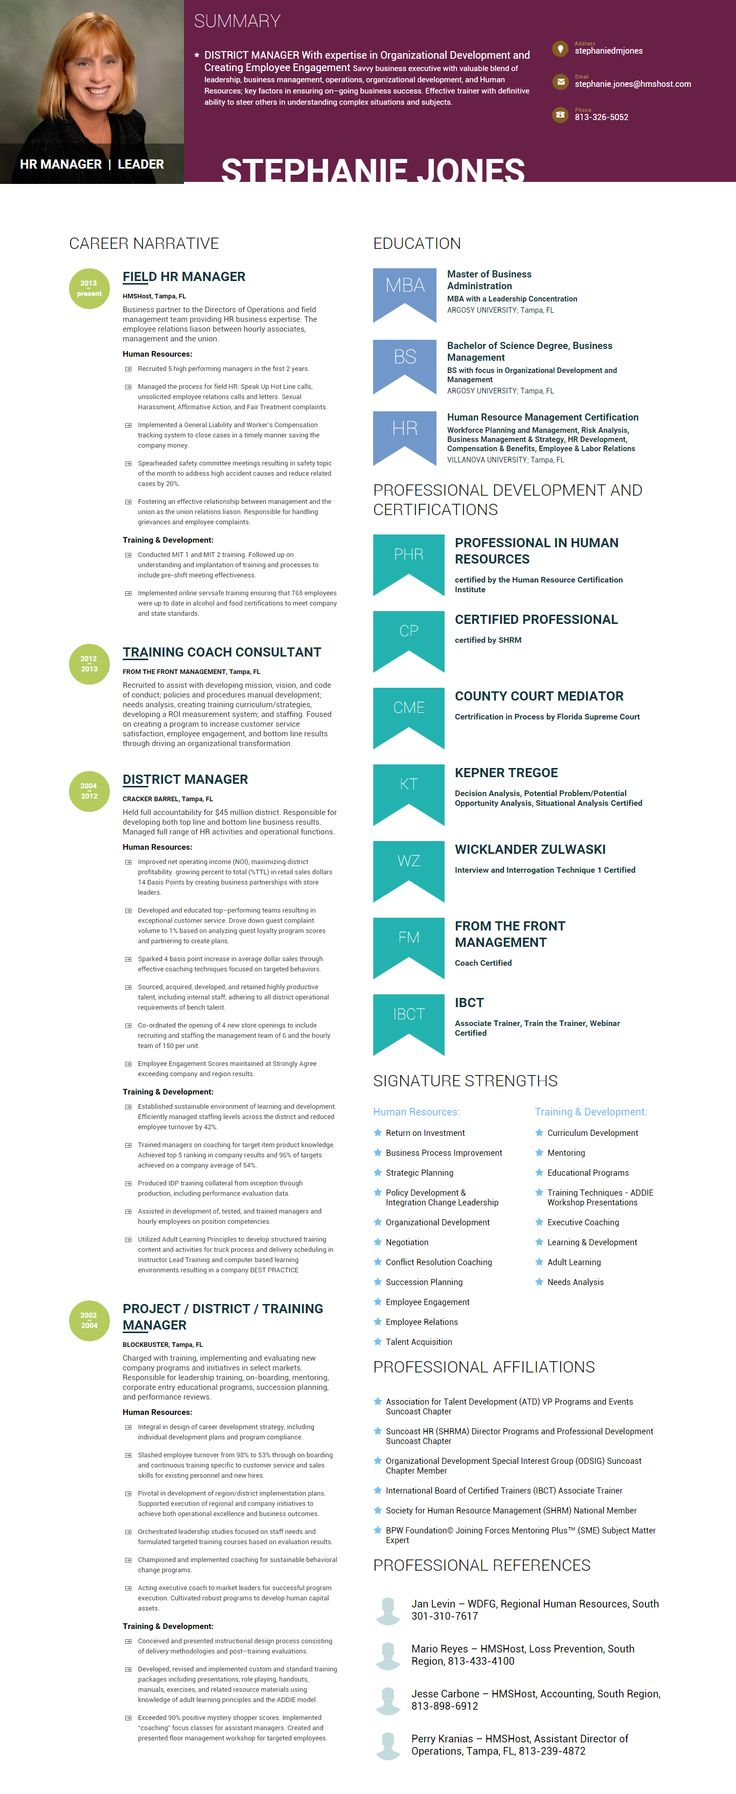 Infographic resume of STEPHANIE JONES HR MANAGER With expertise in Organizational Development